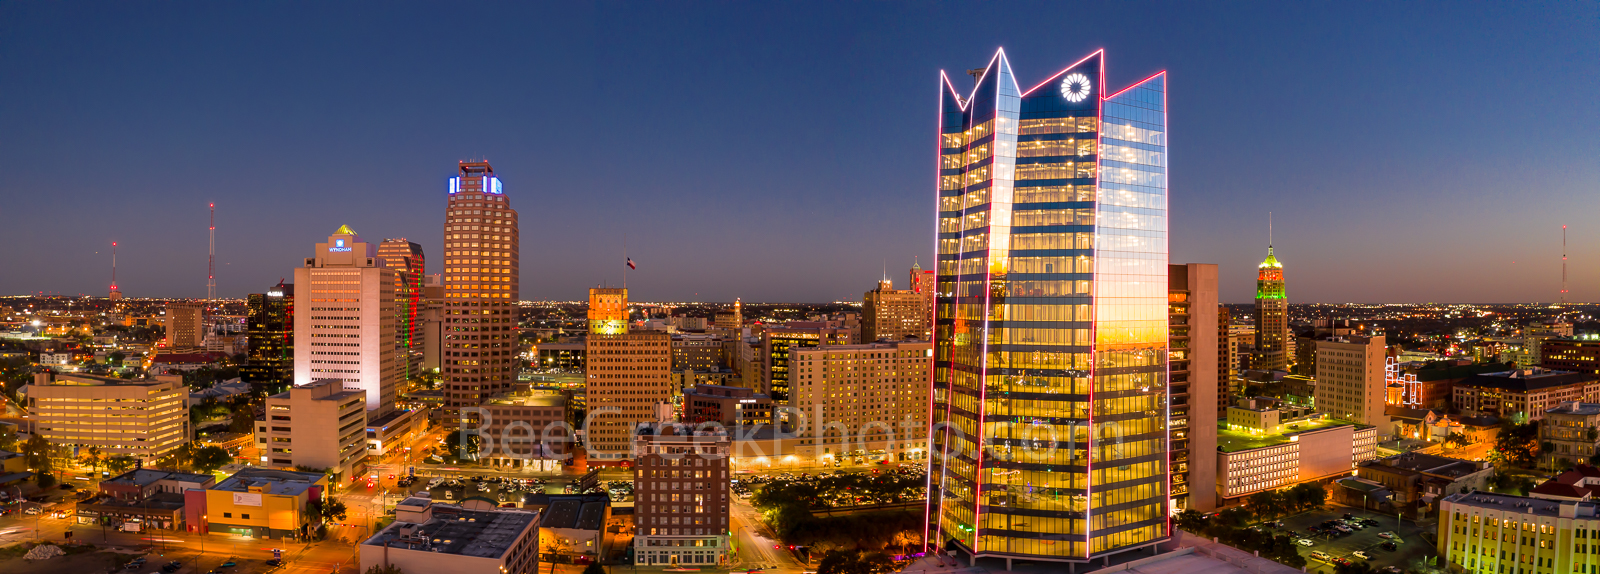 twilight, San Antonio skyline, San Antonio, texas, downtown, Frost Tower, Frost, Tower Life, building, pano, panorama, cityscape, cityscapes, urban, skyline,, photo